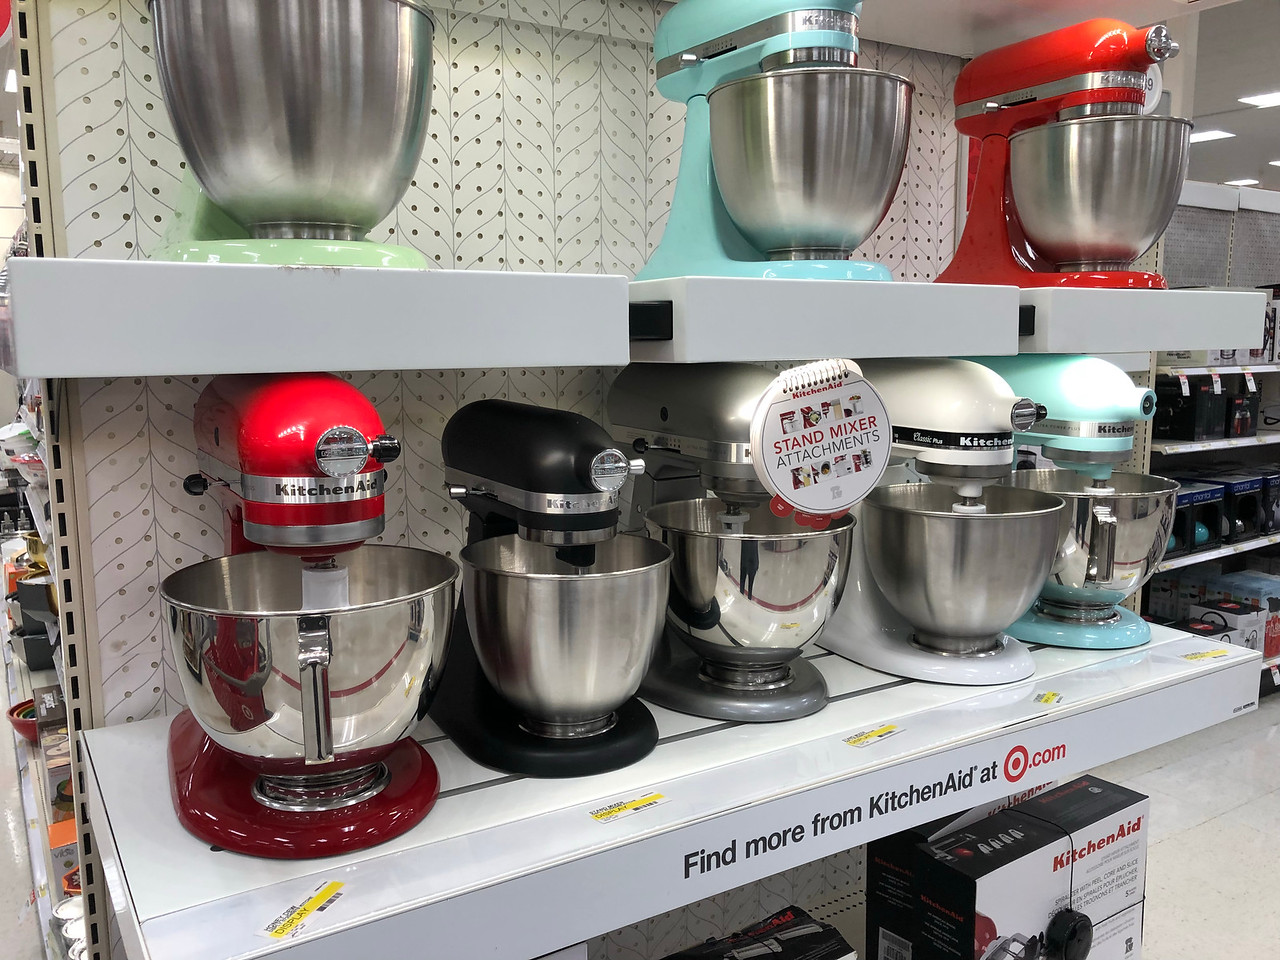 best target black friday 2018 deals – kitchenaid mixers